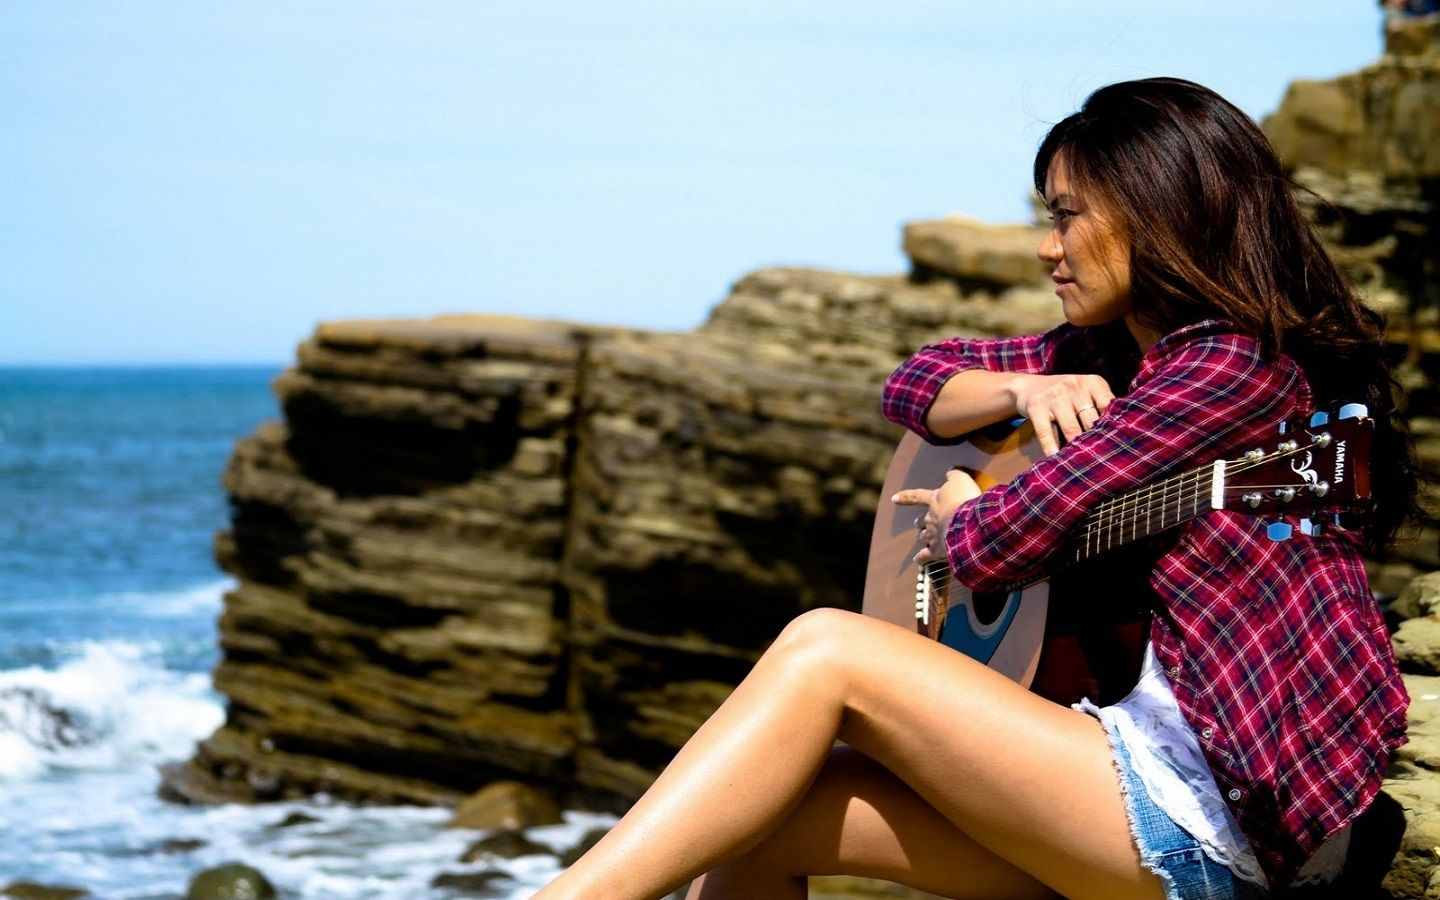 Stylish Girl Wallpaper - Cool And Stylish Profile Pictures For Facebook , HD Wallpaper & Backgrounds